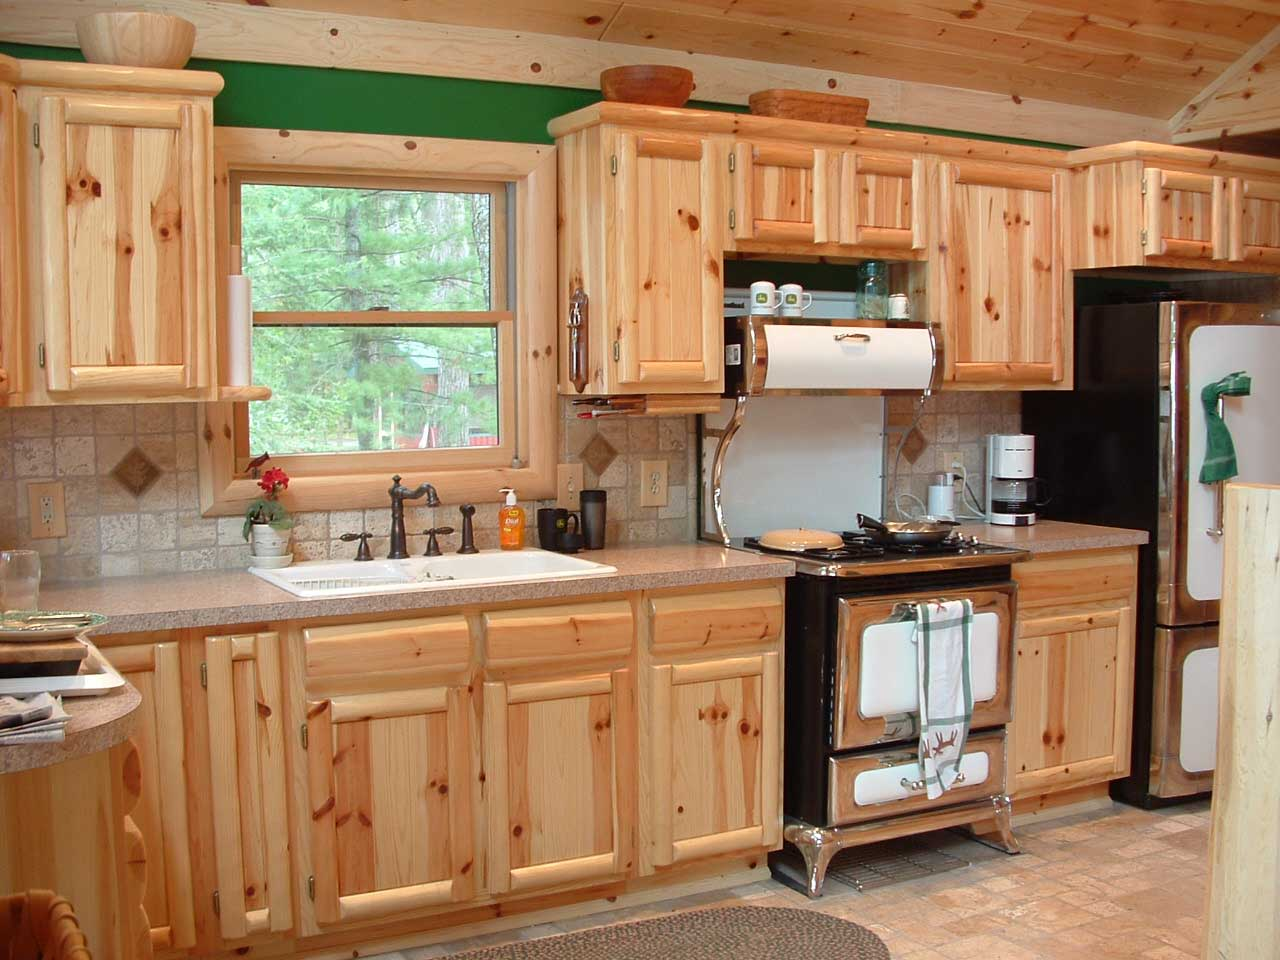 Cabinetry kitchens and baths timber country cabinetry for Cupboard cabinet designs